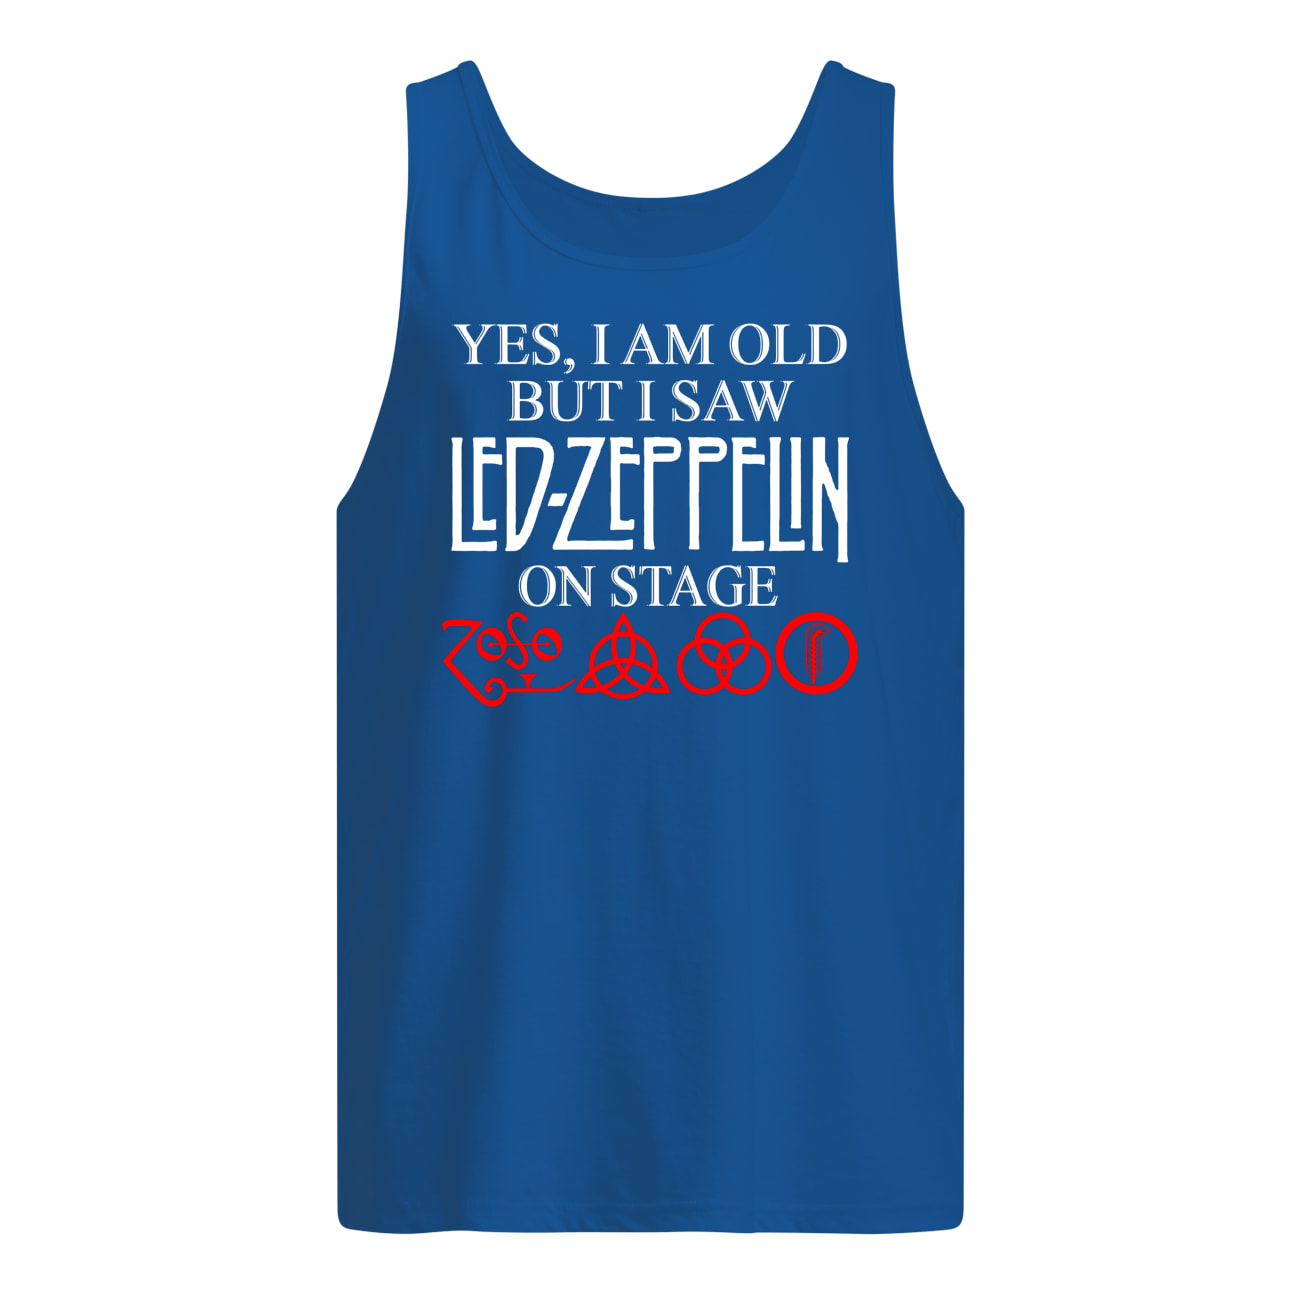 Yes i am old but i saw led-zeppelin on stage tank top